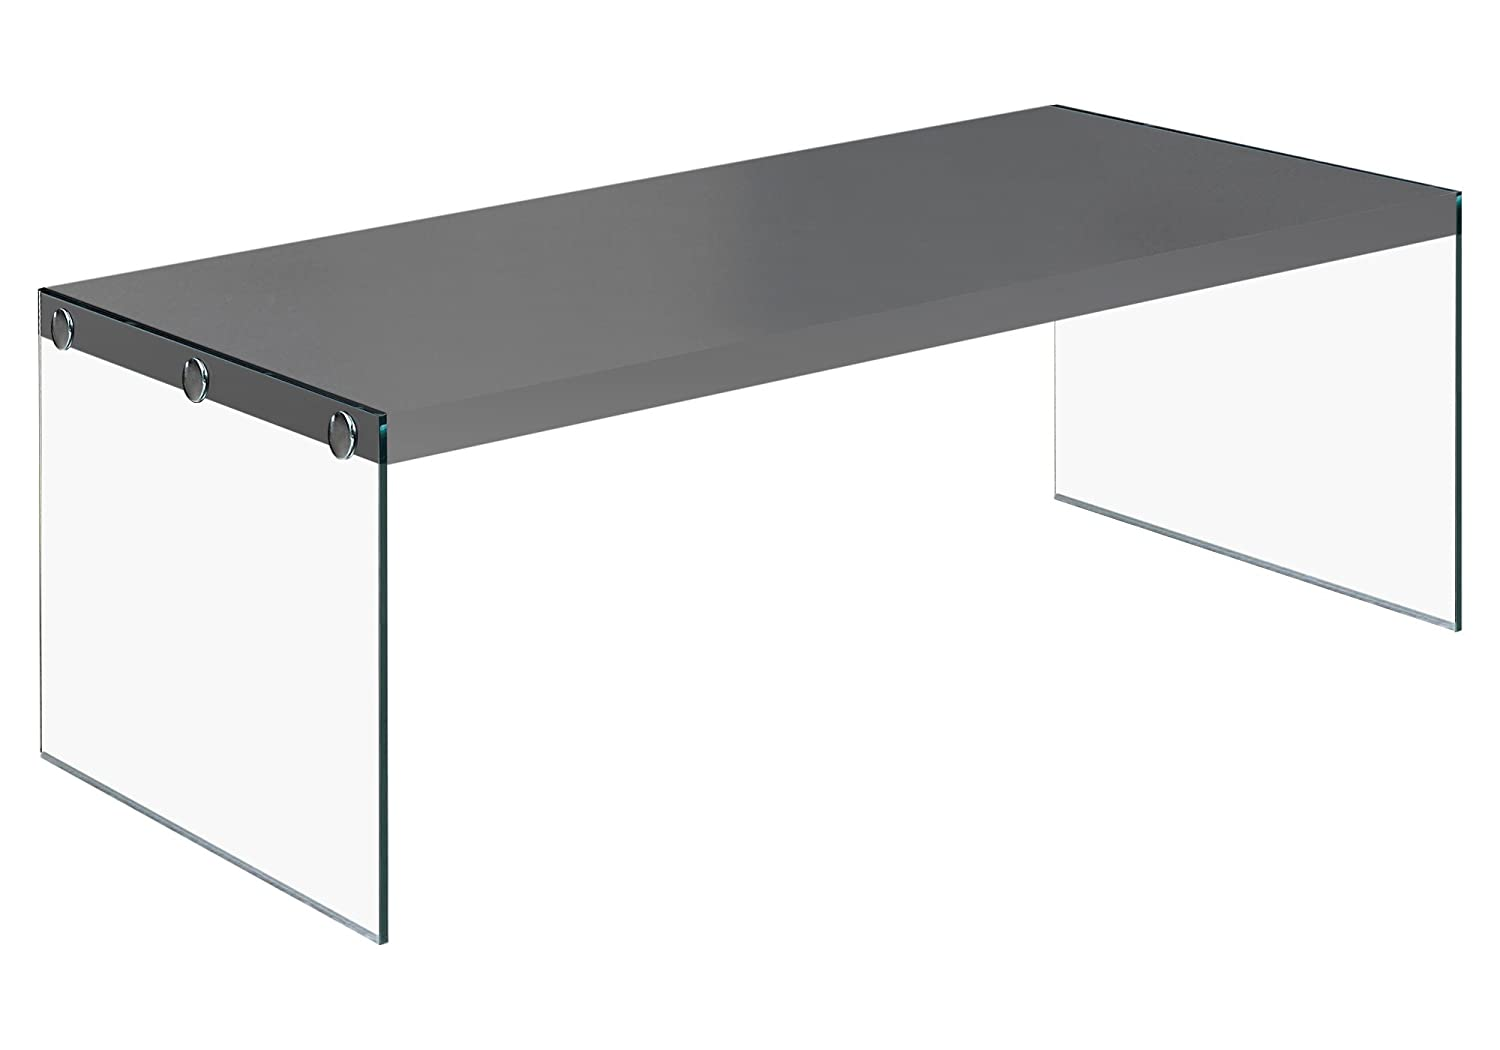 Monarch Specialties I 3292 Glossy Grey Hollow-Core/Tempered Glass Cocktail Table